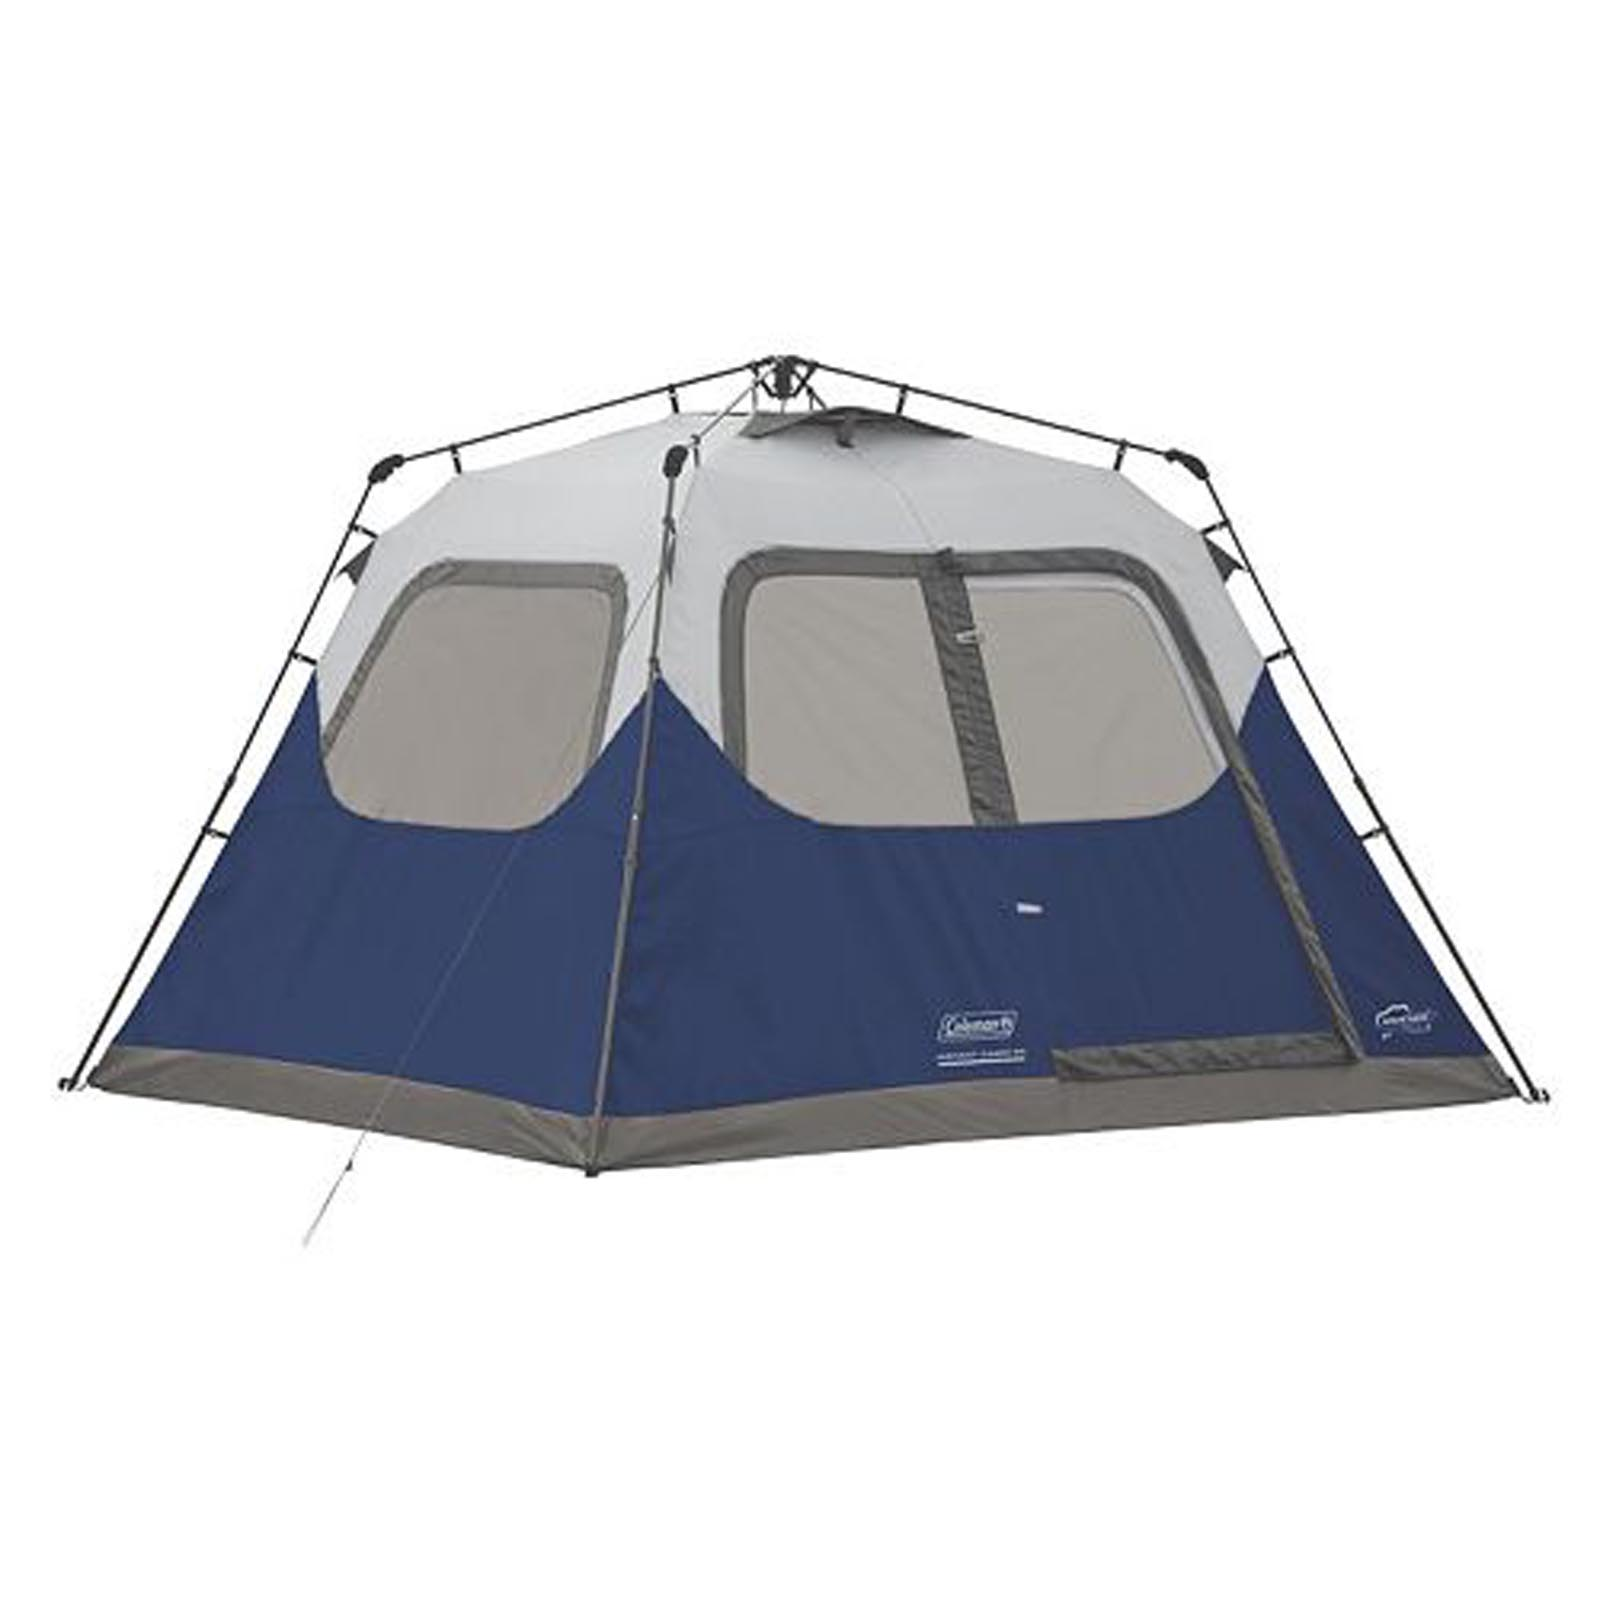 Coleman 6-Person 10u0027 x 9u0027 Instant Cabin Family C&ing Tent w/  sc 1 st  Walmart.com & Family Camping Tents